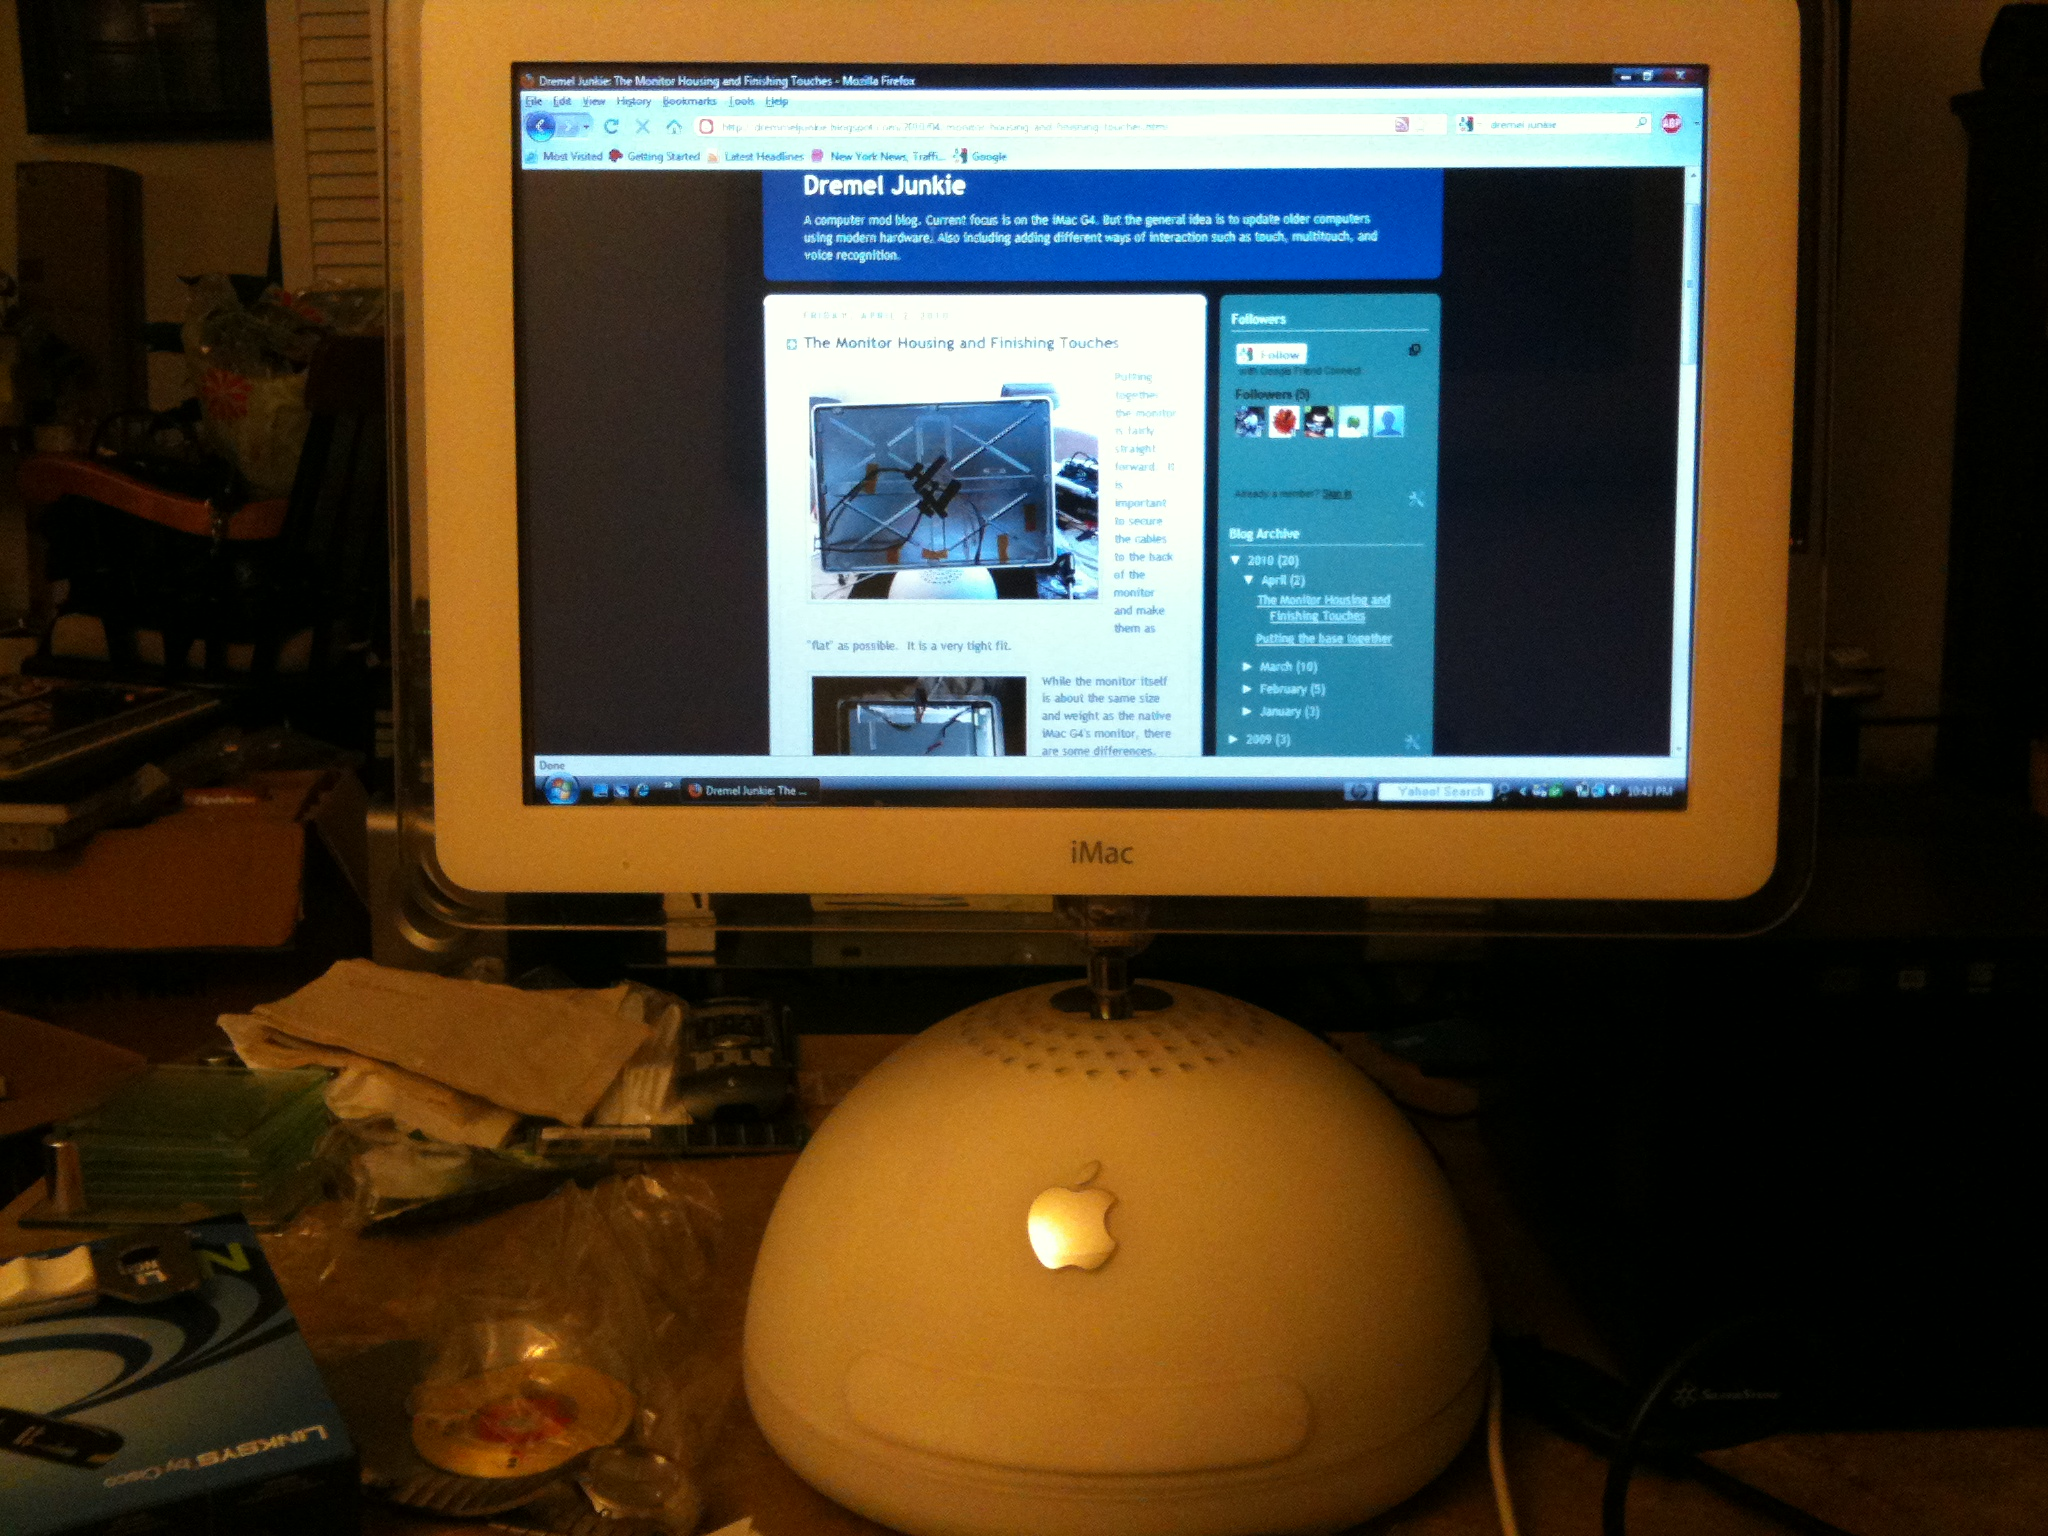 "17"" iMac G4 repurposed as an external monitor with resistive touchscreen"